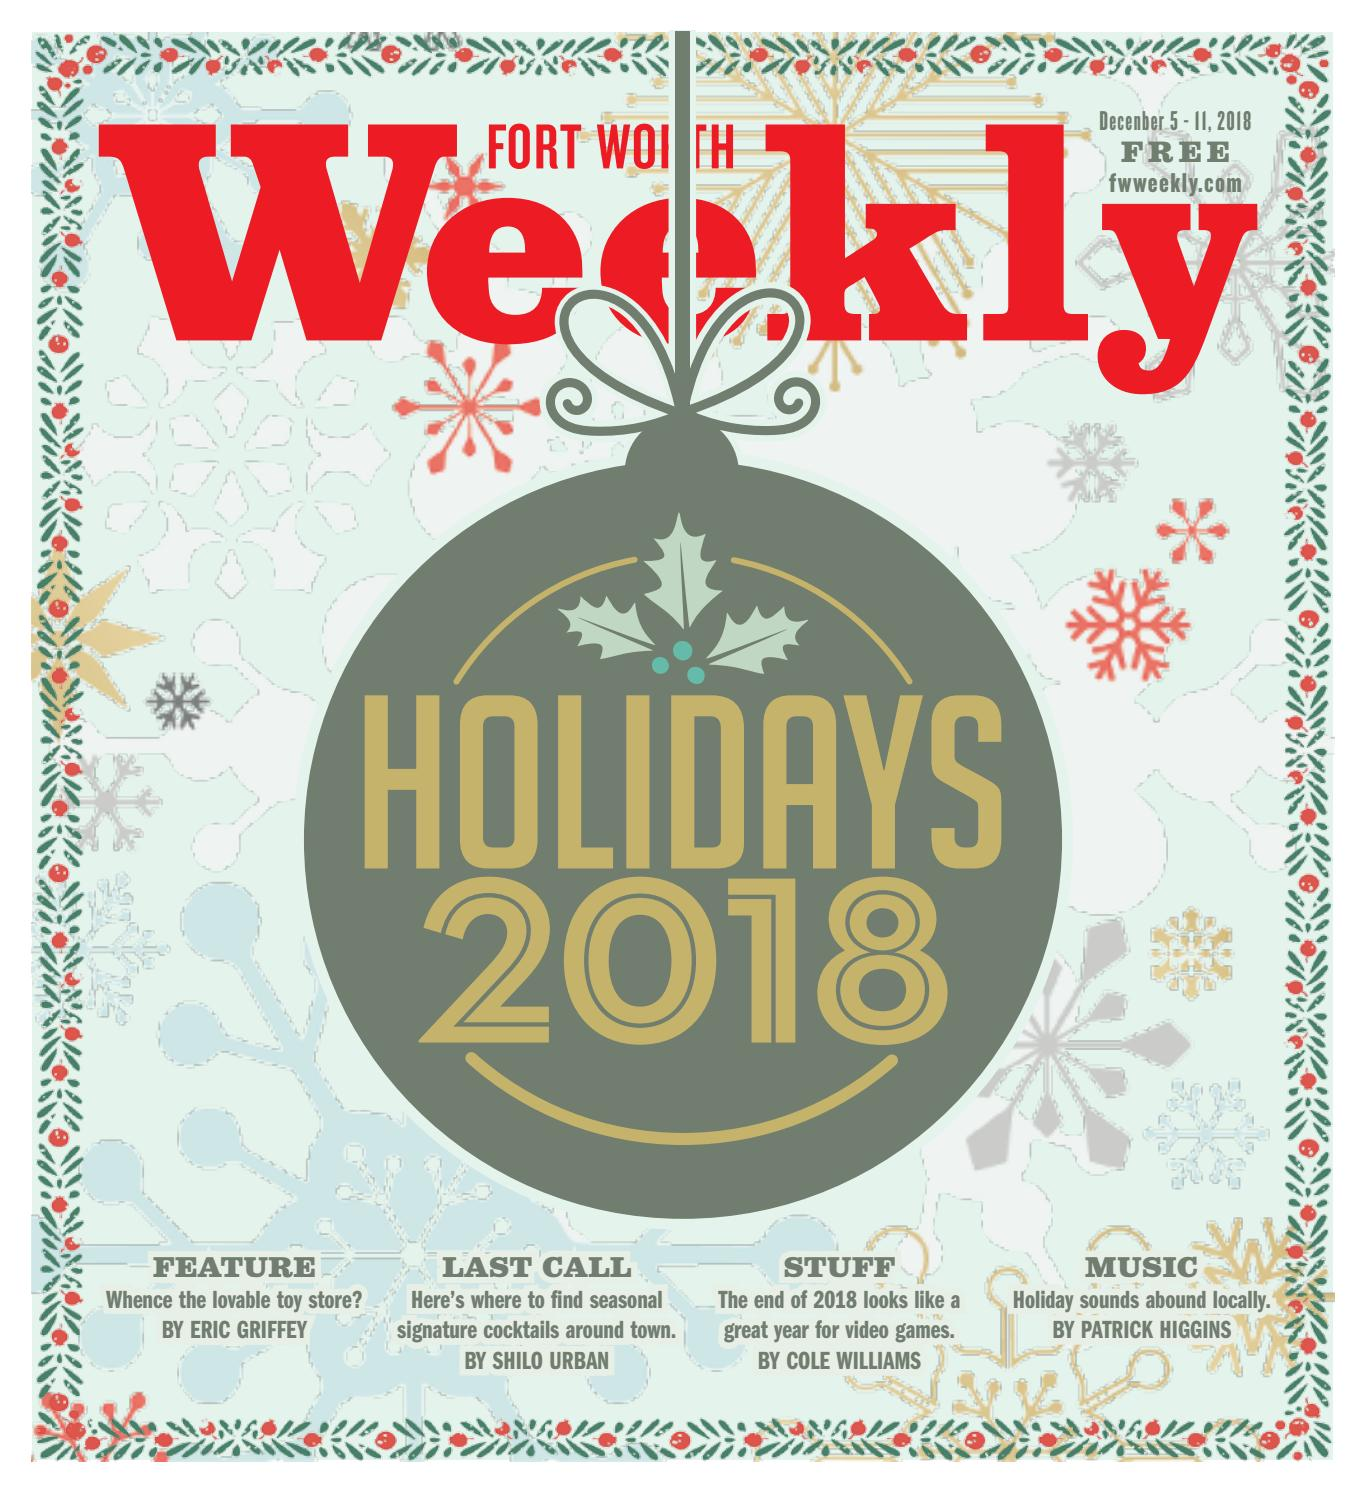 Holidays 2018 by Fort Worth Weekly - issuu